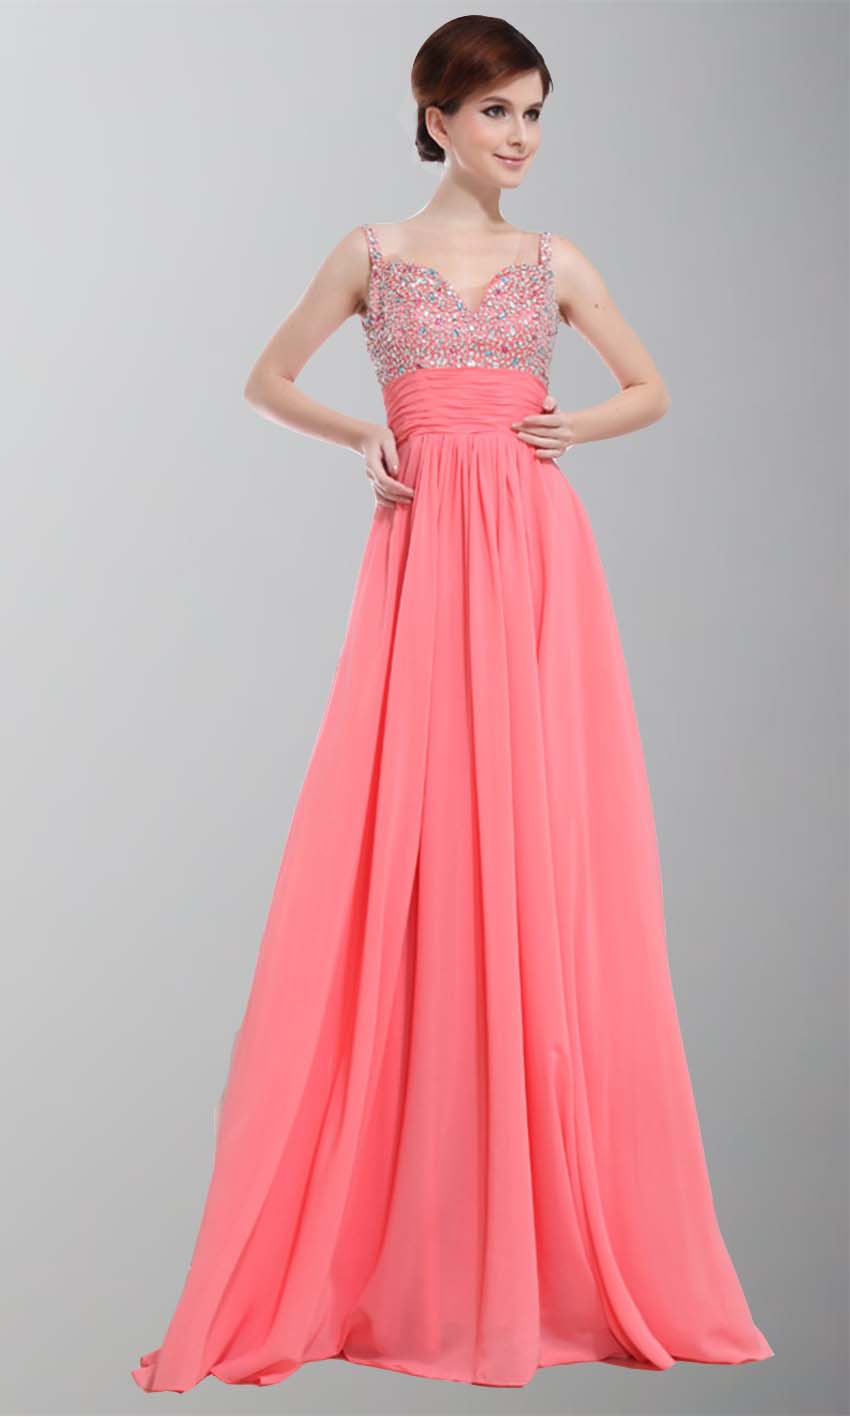 Gorgeous Spagetti Aline Sequin Long Prom Dresses KSP261 [KSP261] - £98.00 : Cheap Prom Dresses Uk, Bridesmaid Dresses, 2014 Prom & Evening Dresses, Look for cheap elegant prom dresses 2014, cocktail gowns, or dresses for special occasions? kissprom.co.uk offers various bridesmaid dresses, evening dress, free shipping to UK etc.